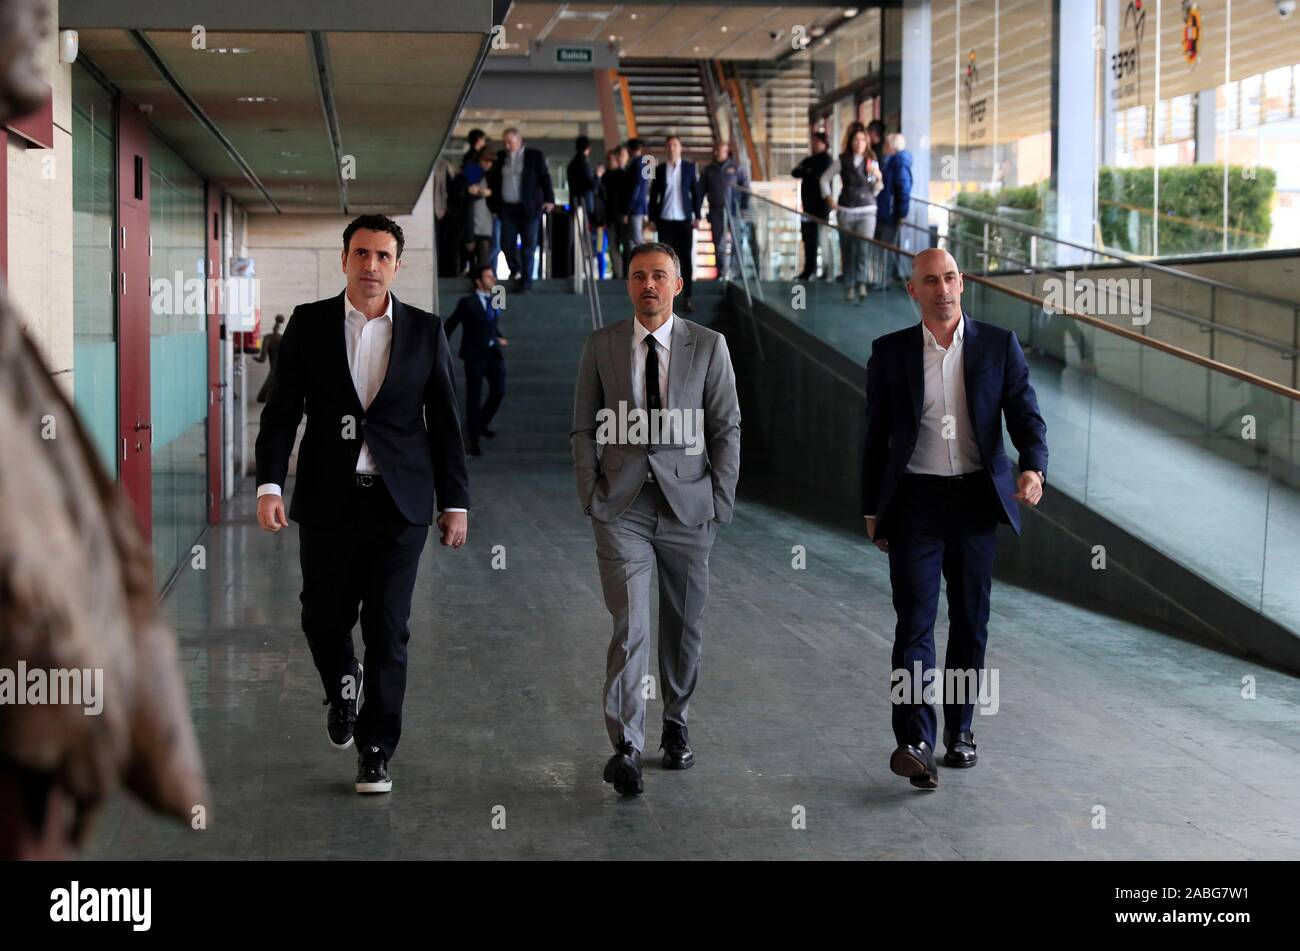 (L-R) Spanish Royal Soccer Federation (RFEF) sports director Francisco Molina, Spanish national soccer team's head coach, Luis Enrique, and President of the Spanish Royal Soccer Federation (RFEF), Luis Rubiales, arrive for Luis Enrique's presentation press conference at the Sports City of Las Rozas in Madrid, Spain, 27 November 2019. Luis Enrique returns as head coach five months after he left the job due to personal reasons, period during which he was replaced by his former assistant Robert Moreno. EFE/ Ballesteros Stock Photo